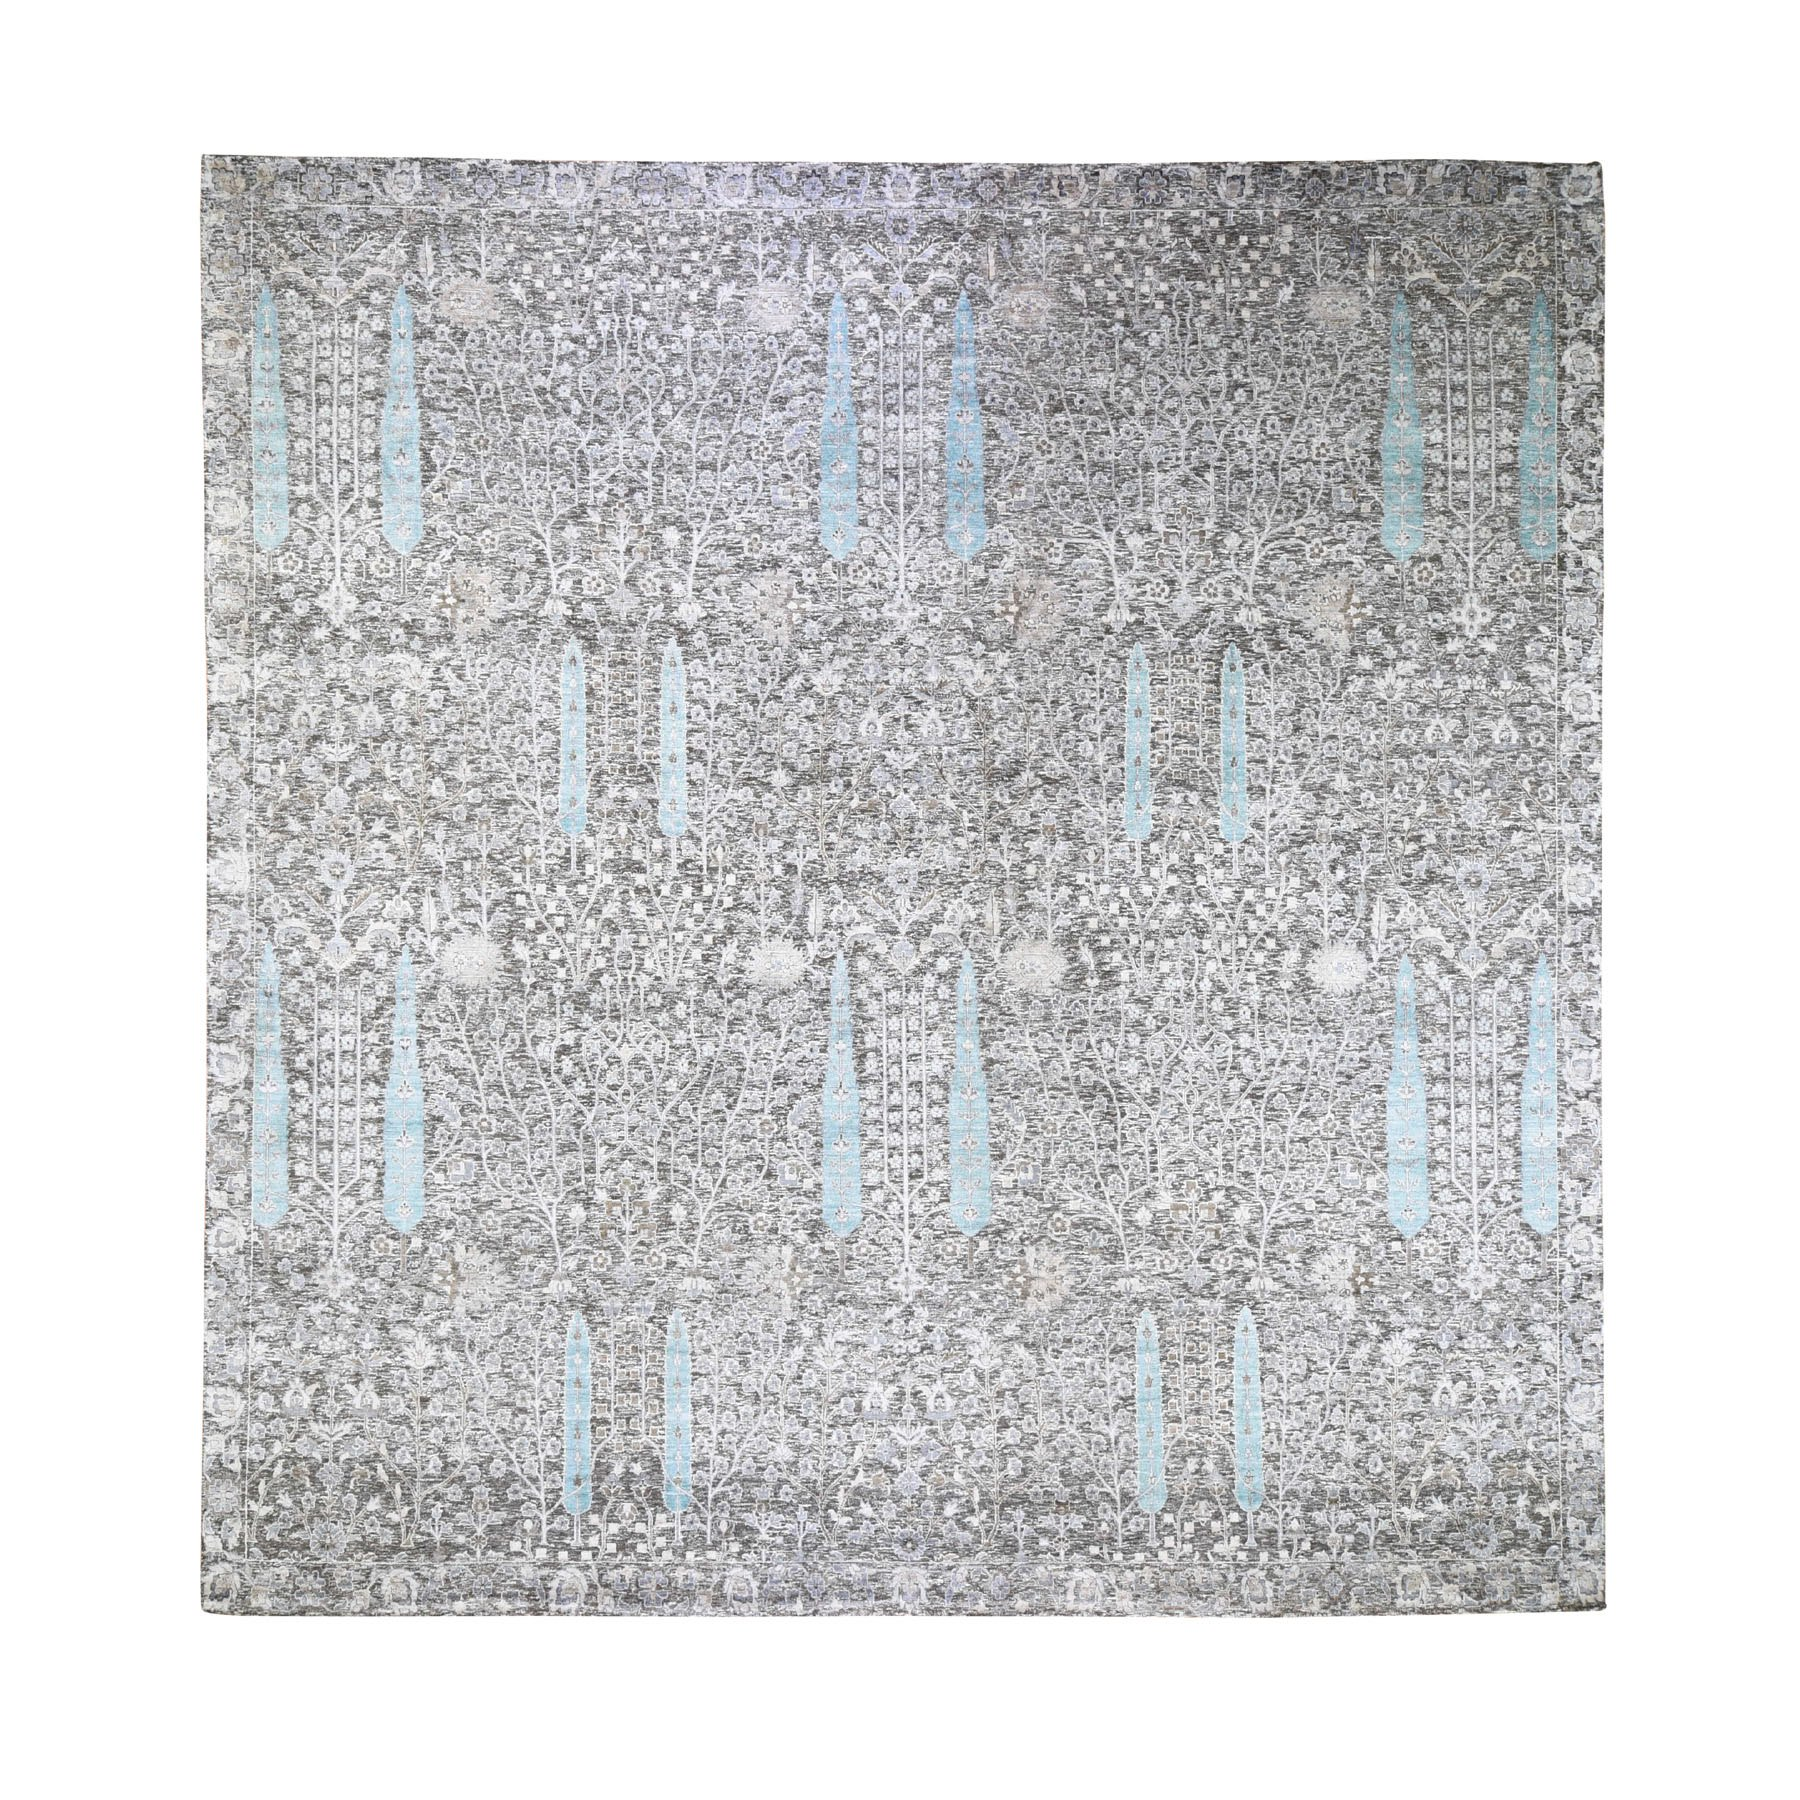 12'x12' Cypress Tree Design Silk with Textured Wool Hand Woven Square Oriental Rug